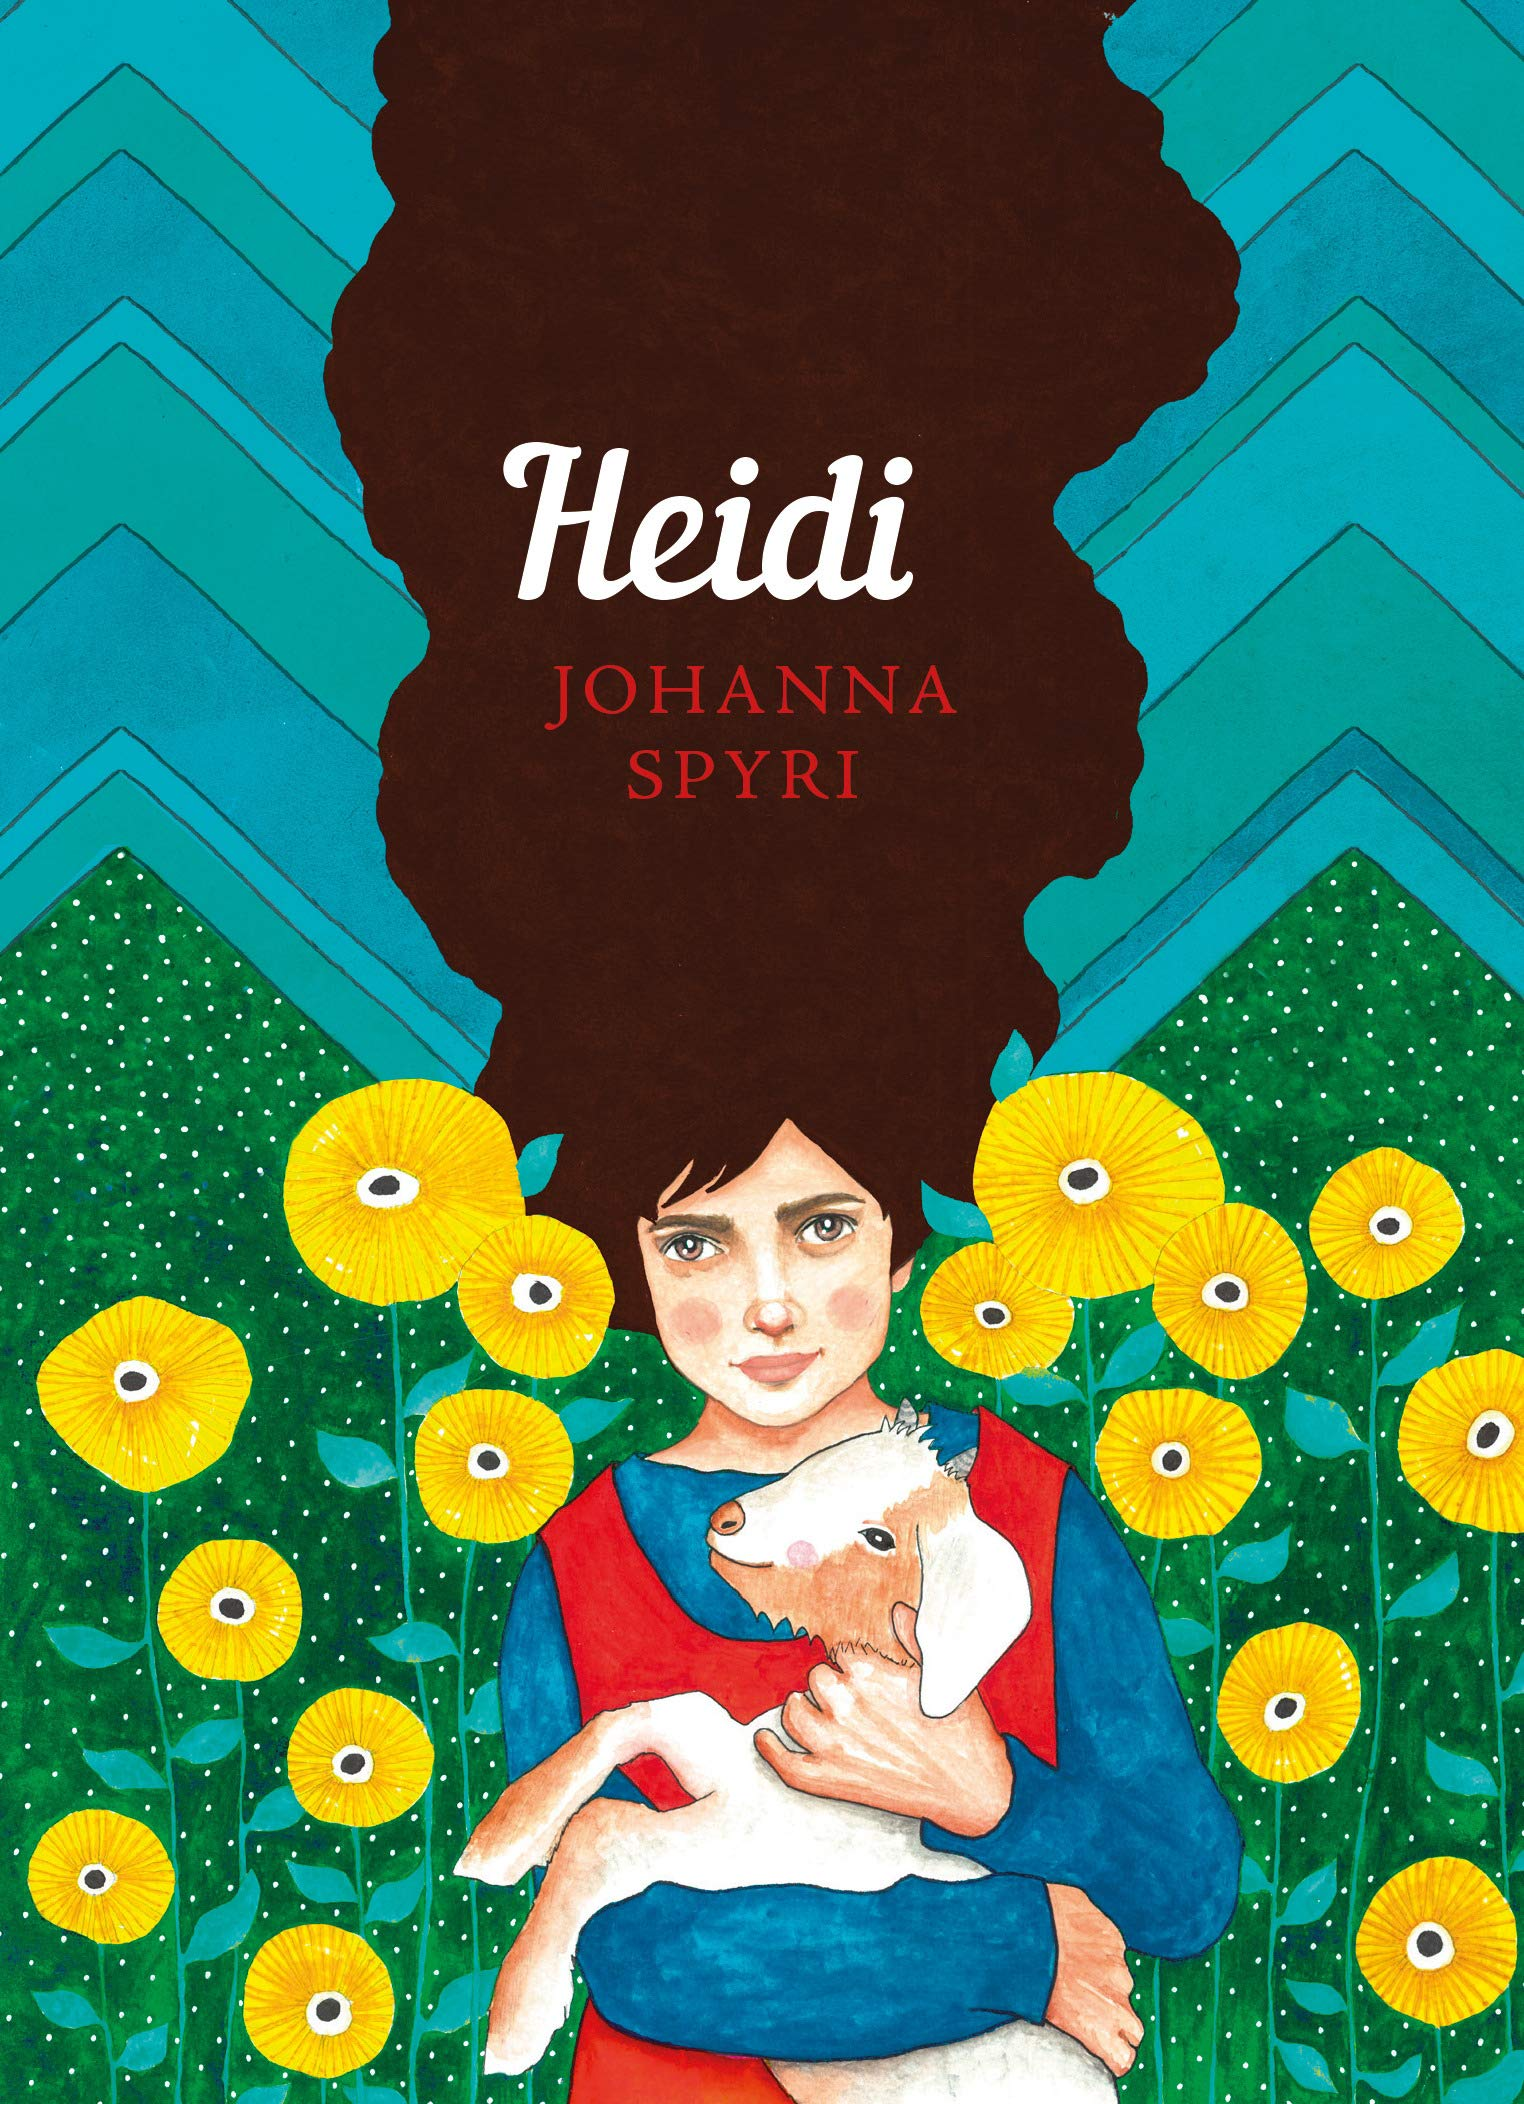 heidi johanna spyri sisterhood collection